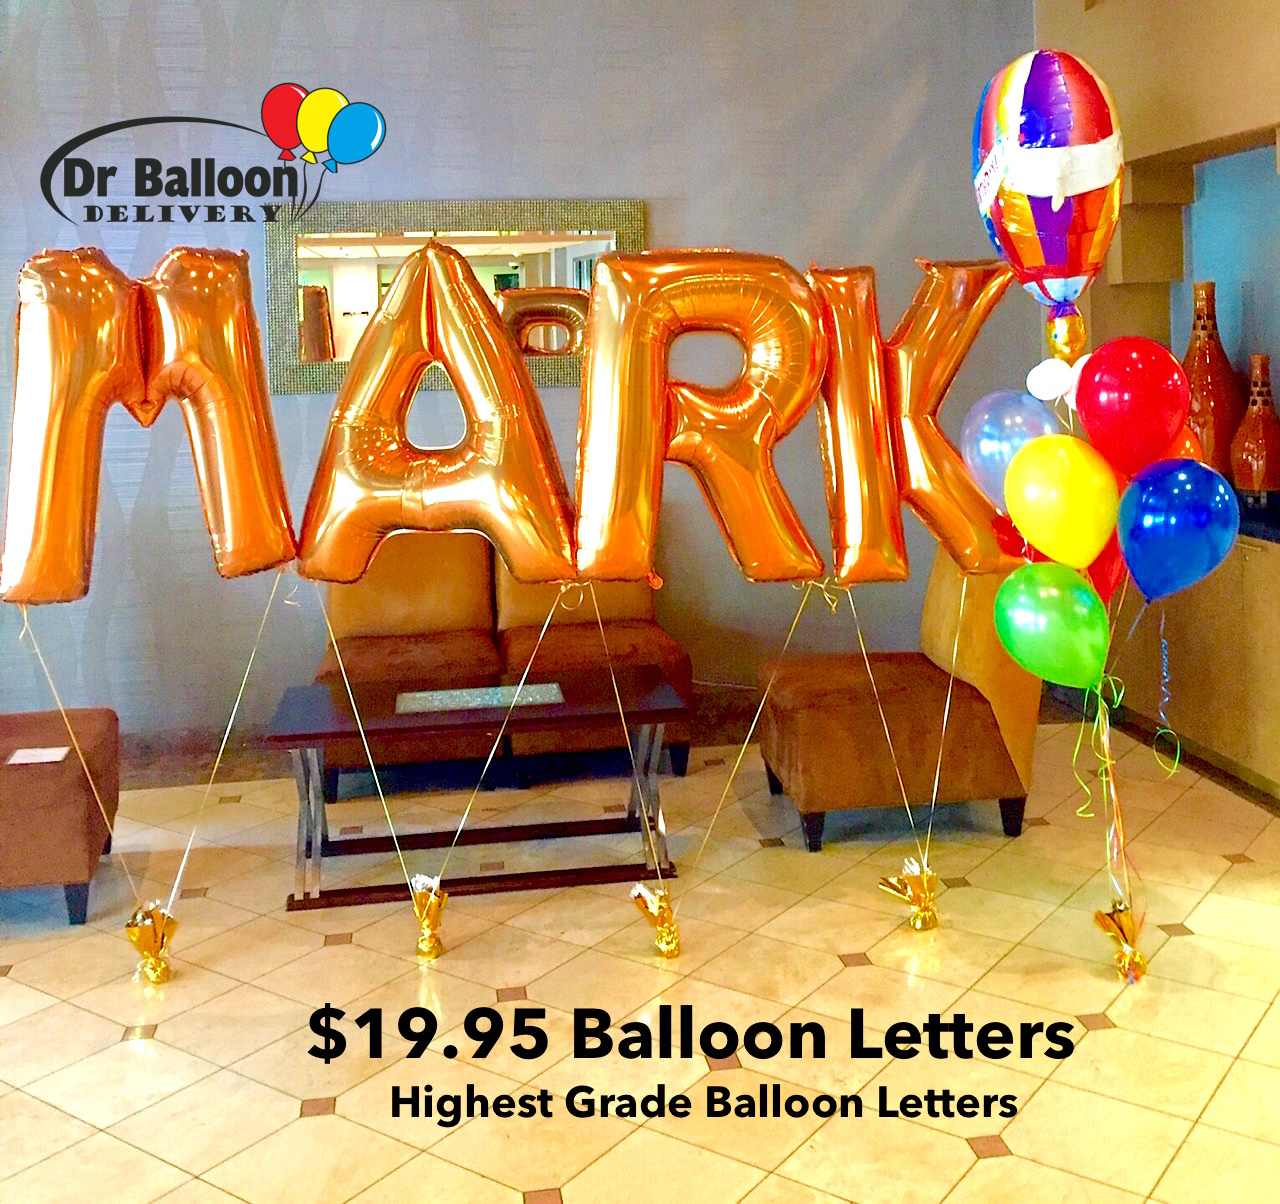 party city letter balloons dr balloon delivery 310 215 0700 los angeles in la 23904 | Balloon Letters